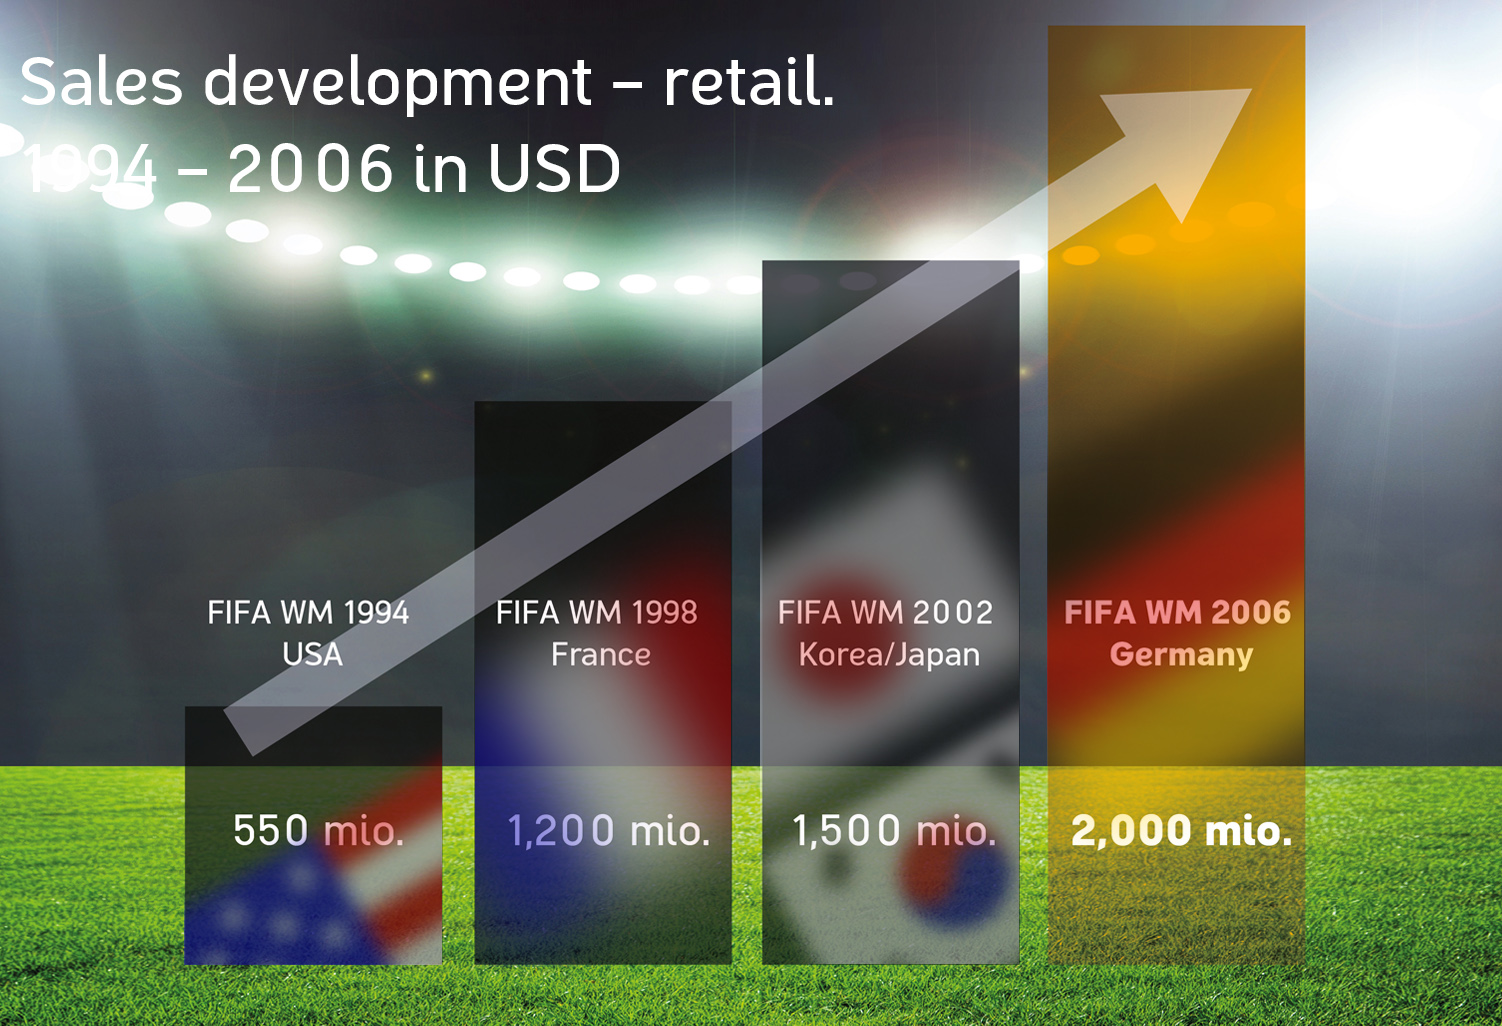 FIFA World Cup: Sales Development - Retail. 1994 – 2006 in USD